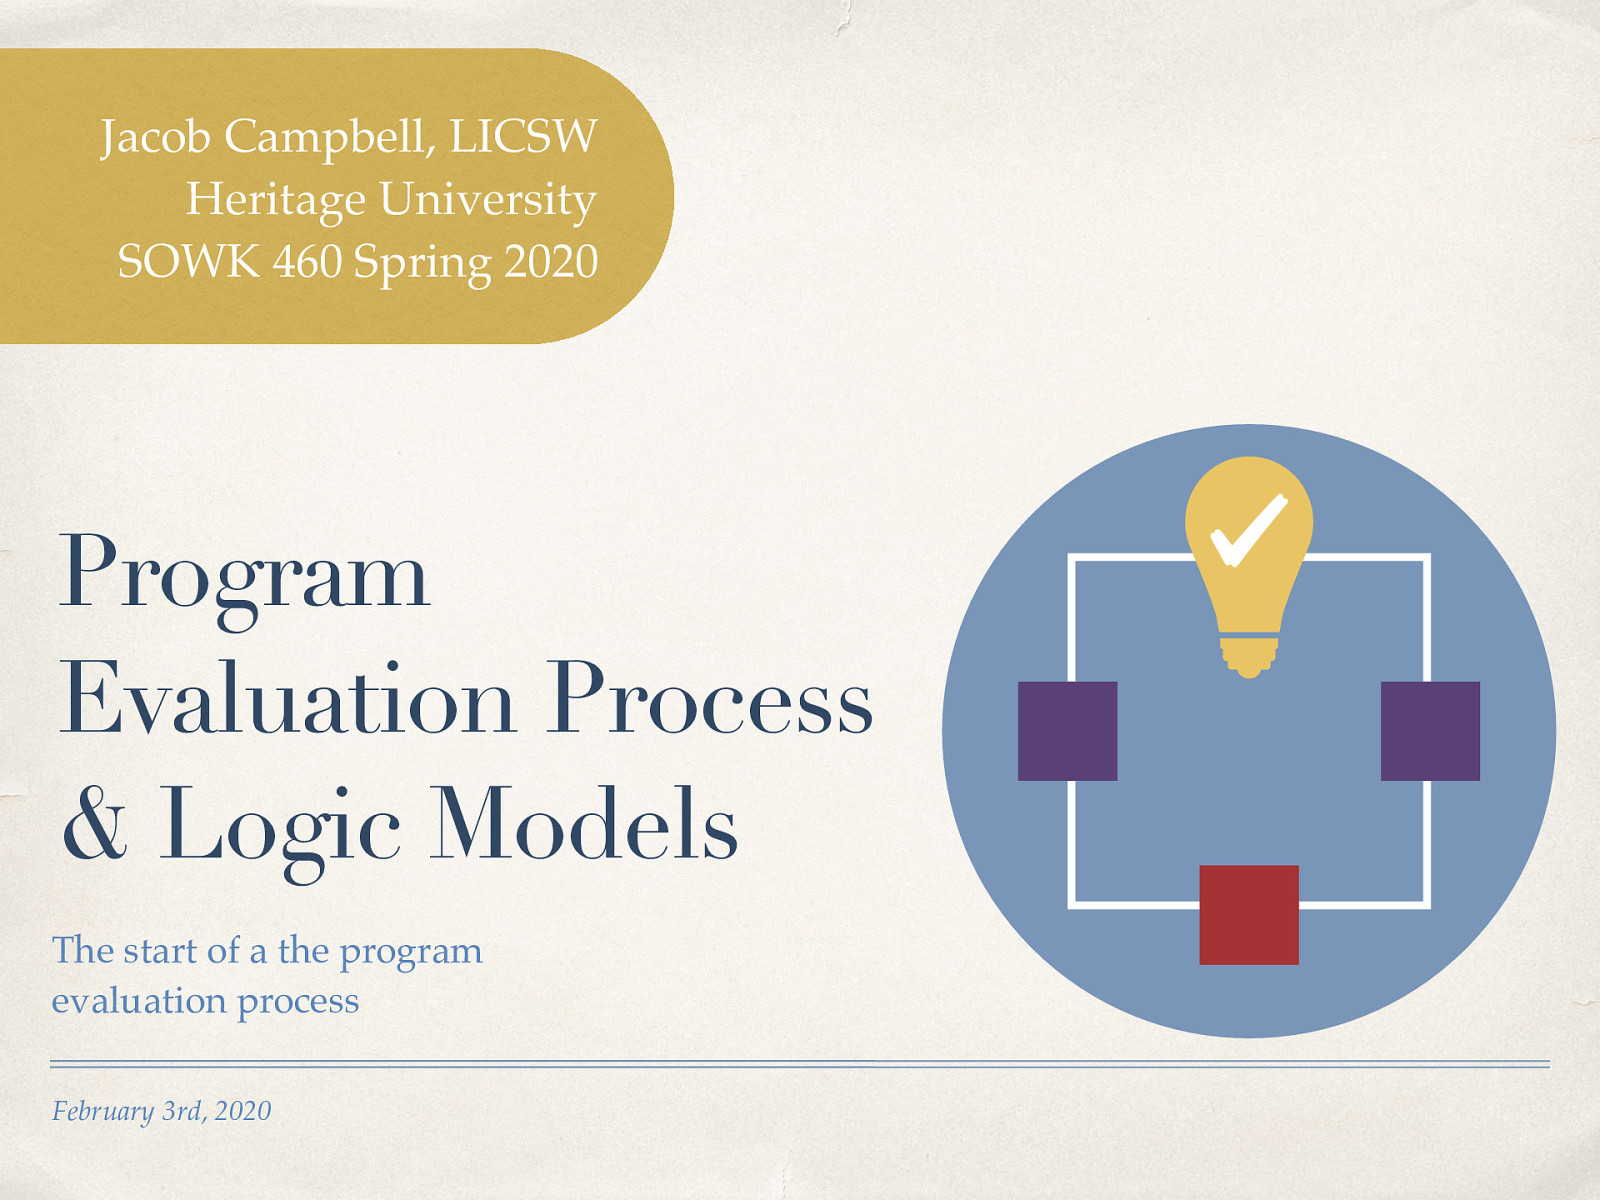 Week 04 - Program Evaluation Process and Logic Models